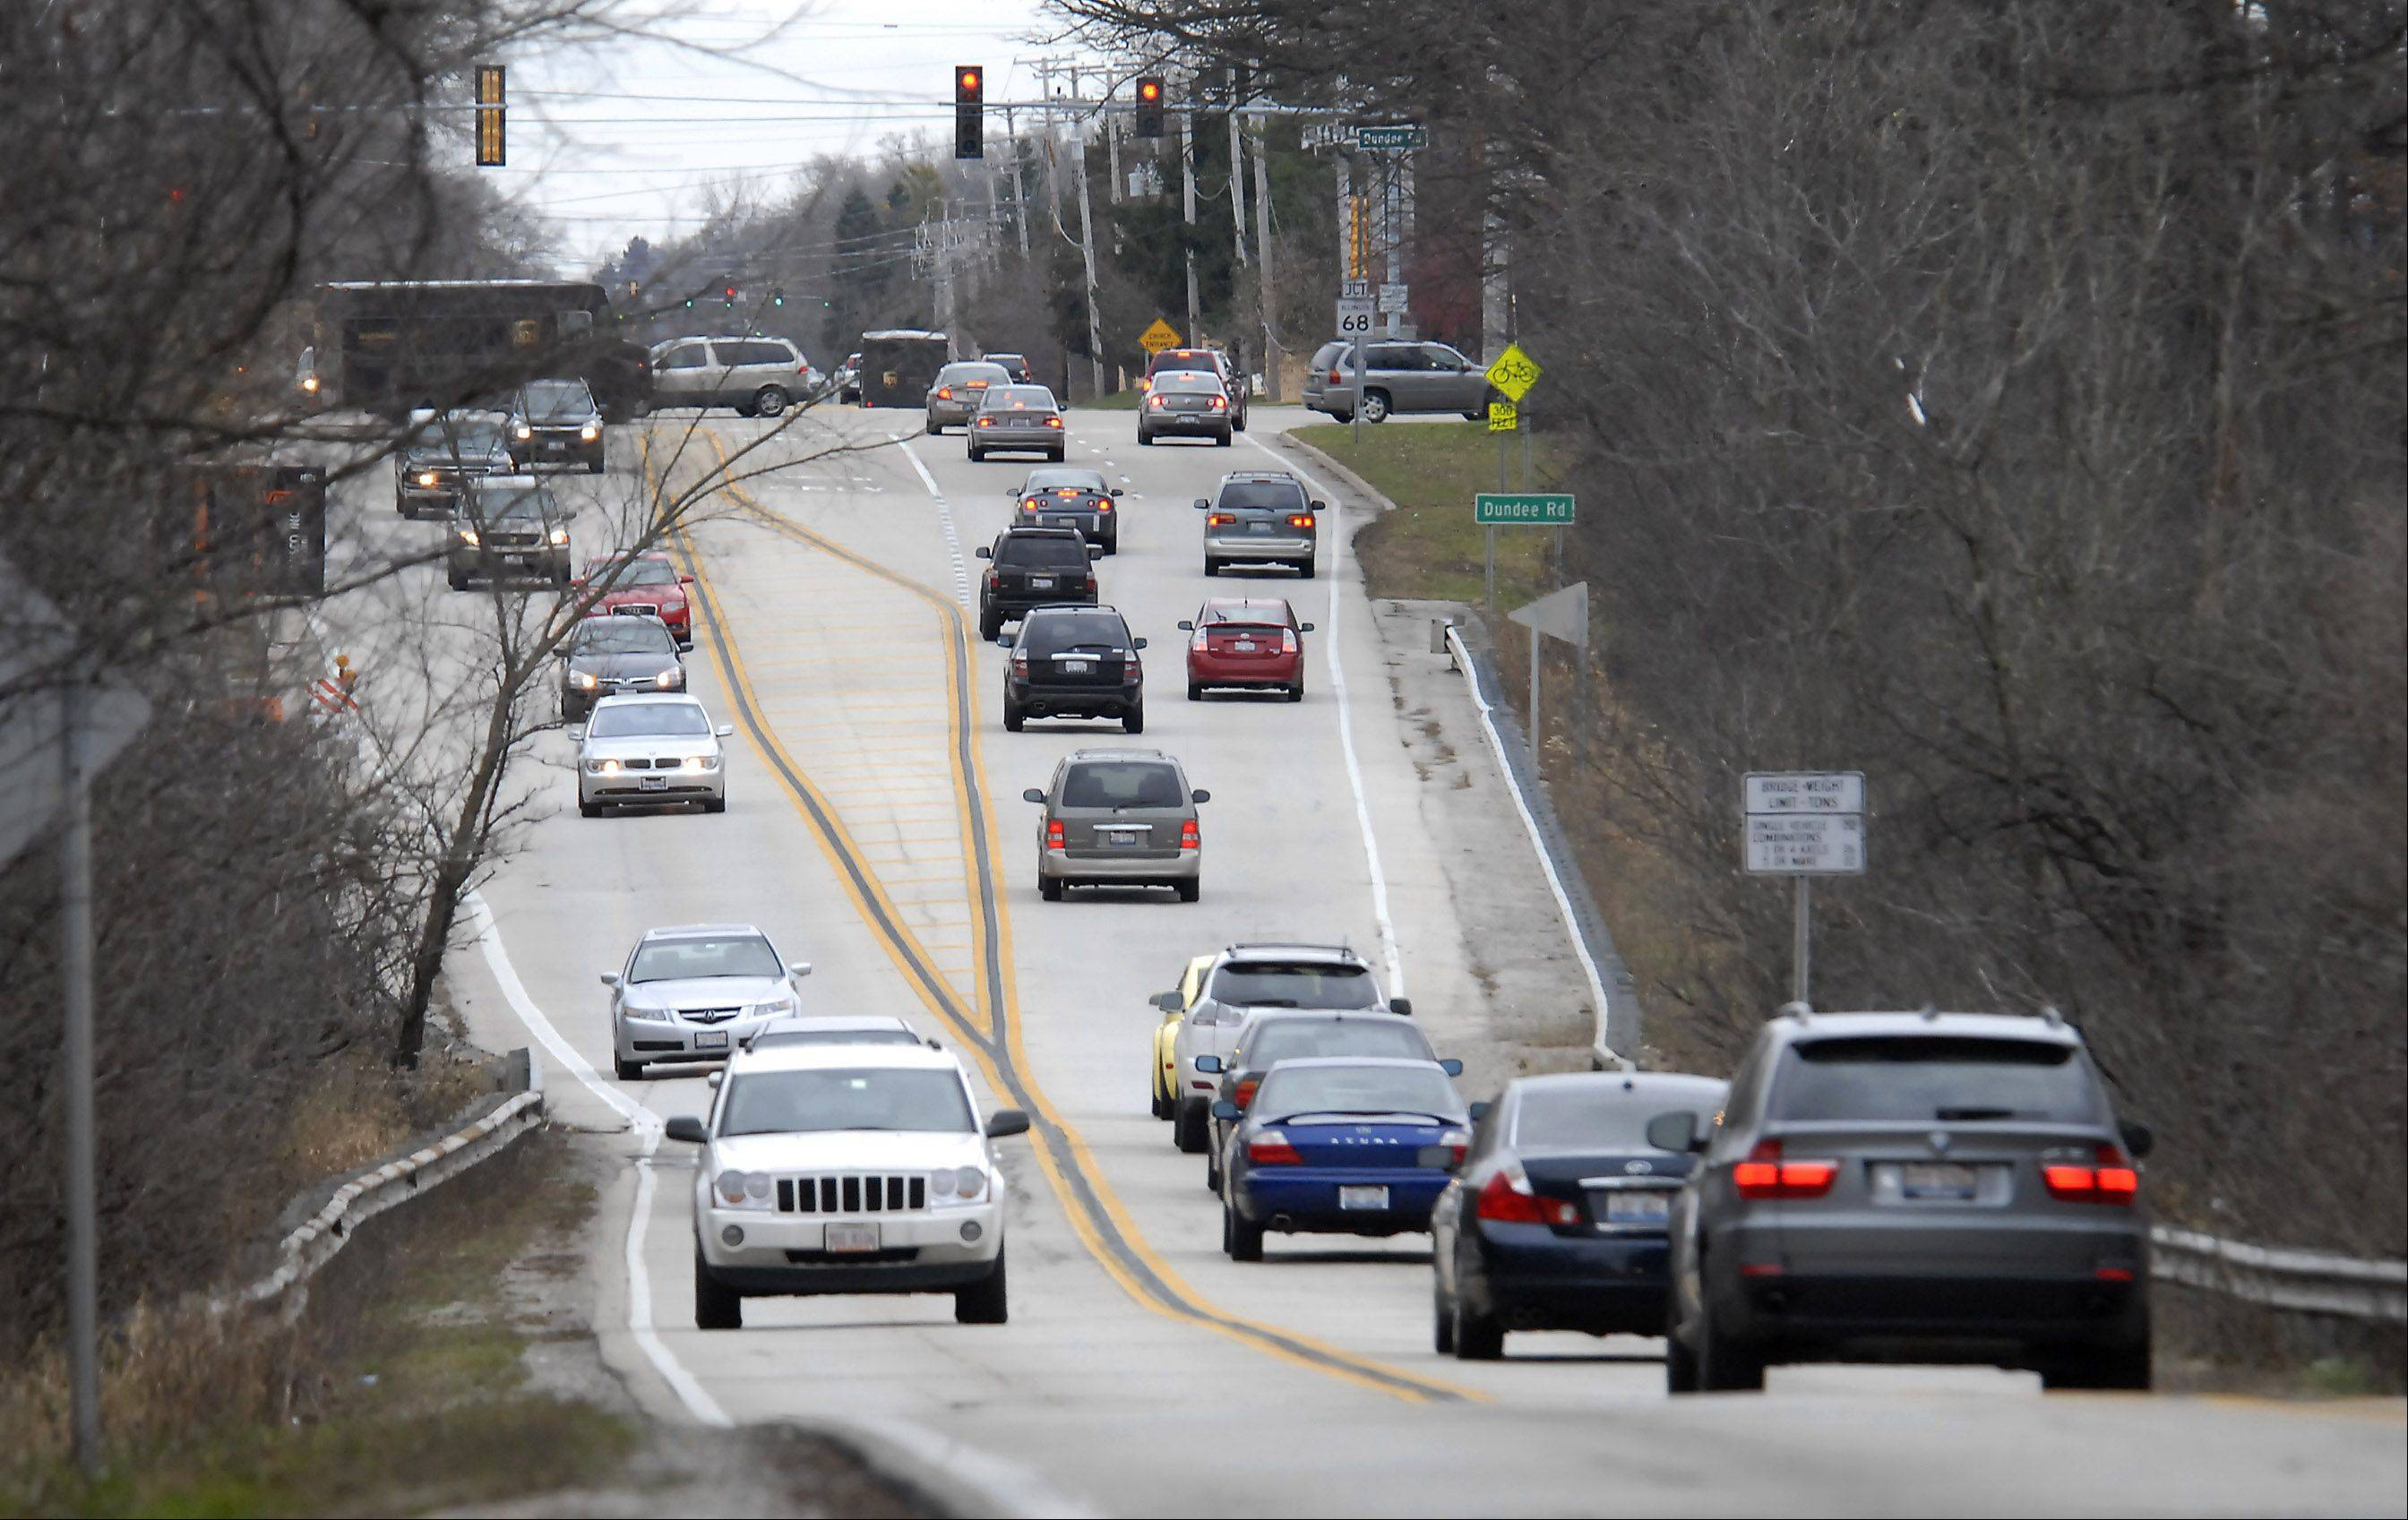 The Cook County Board last month approved additional engineering work related to the Quentin Road expansion project between Dundee and Lake-Cook roads near Palatine.